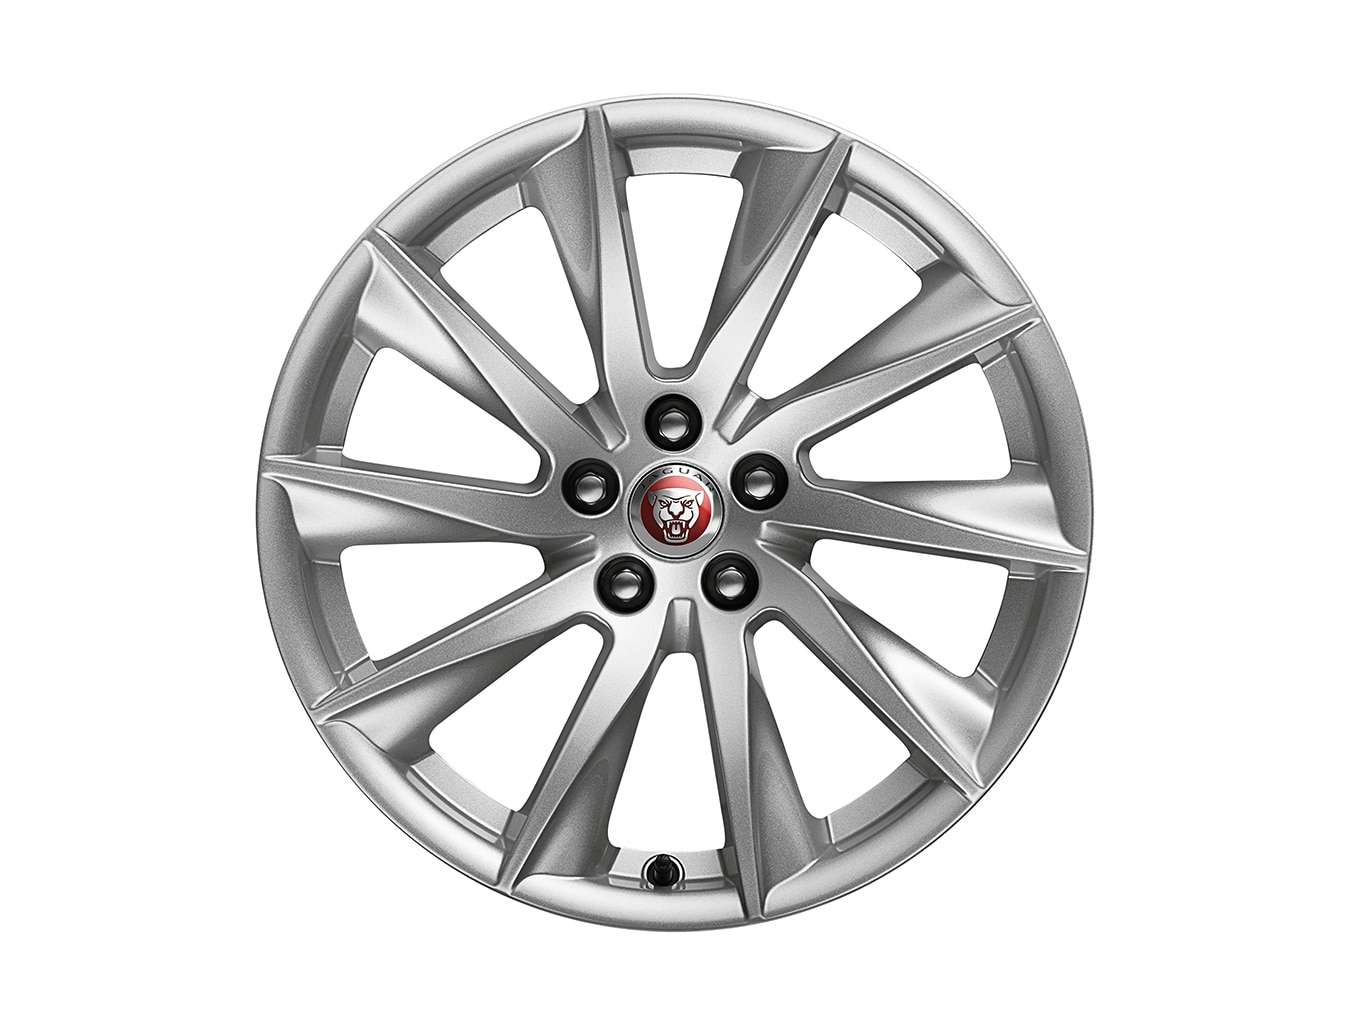 "Alloy Wheel - 18"" Style 1024, 10 spoke, Front"